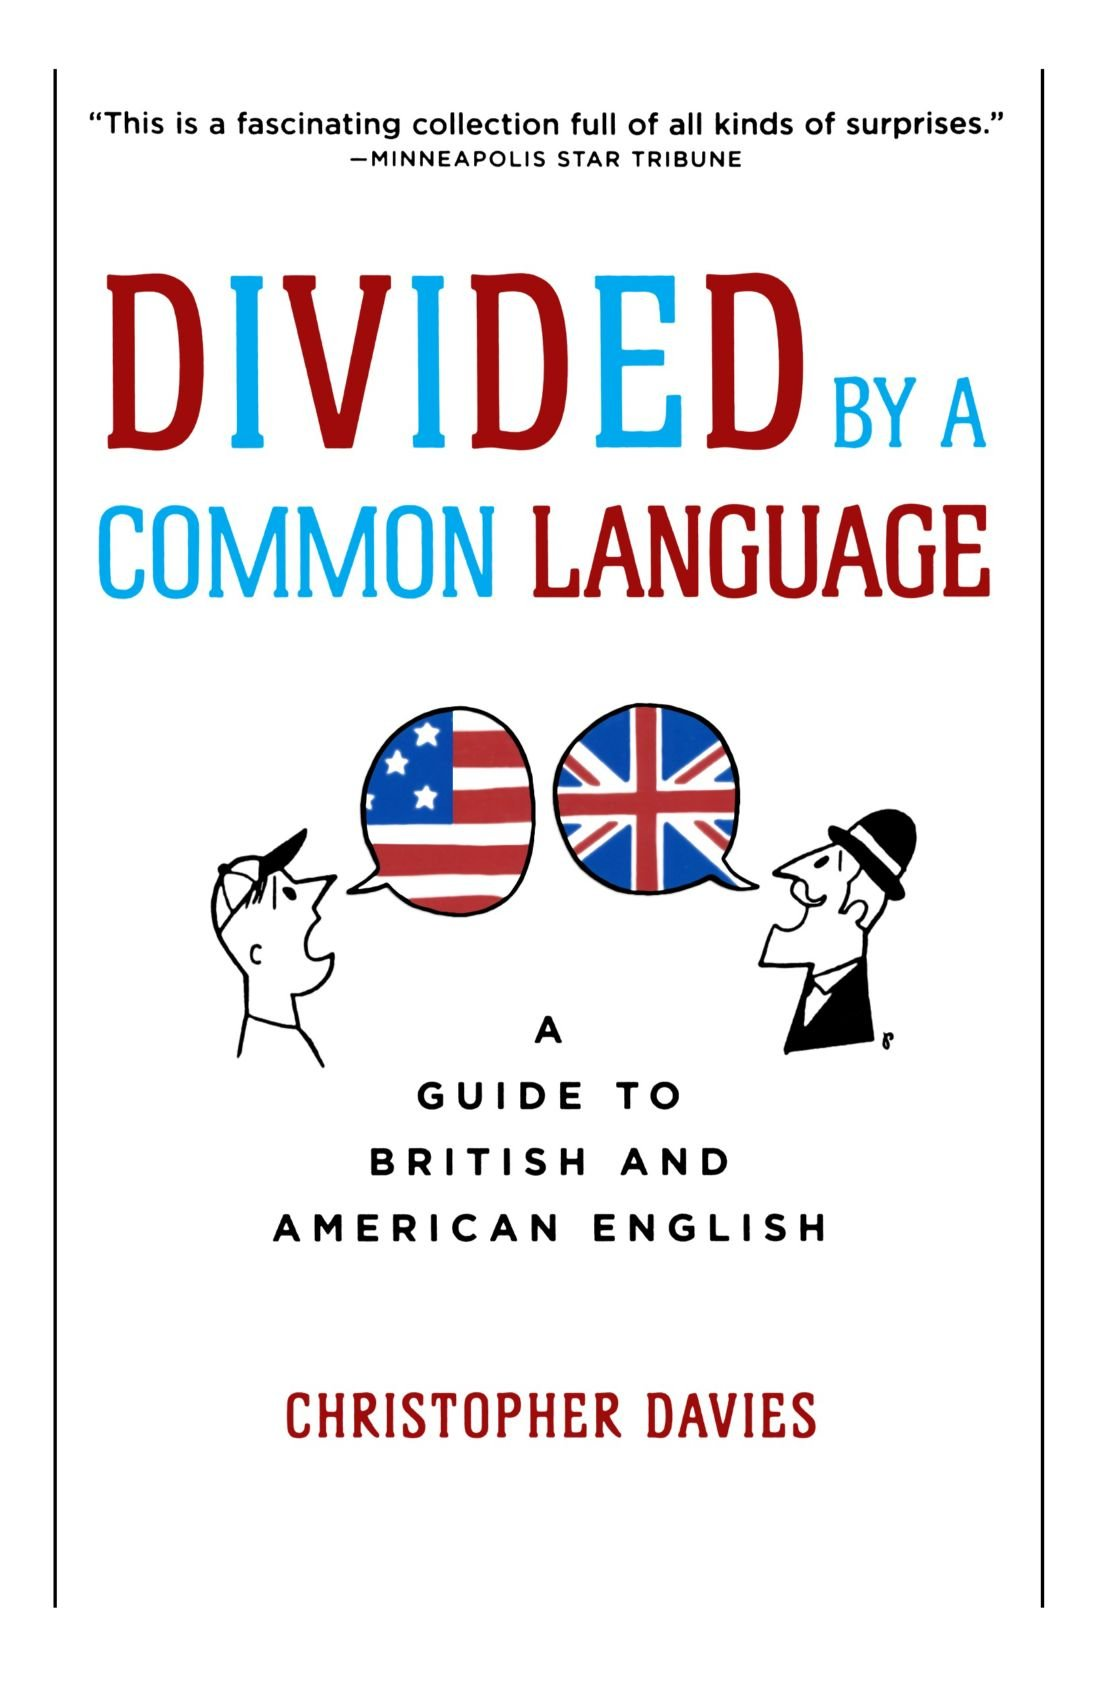 Divided by a Common Language: A Guide to British and American English:  Christopher Davies: 9780618911622: Amazon.com: Books